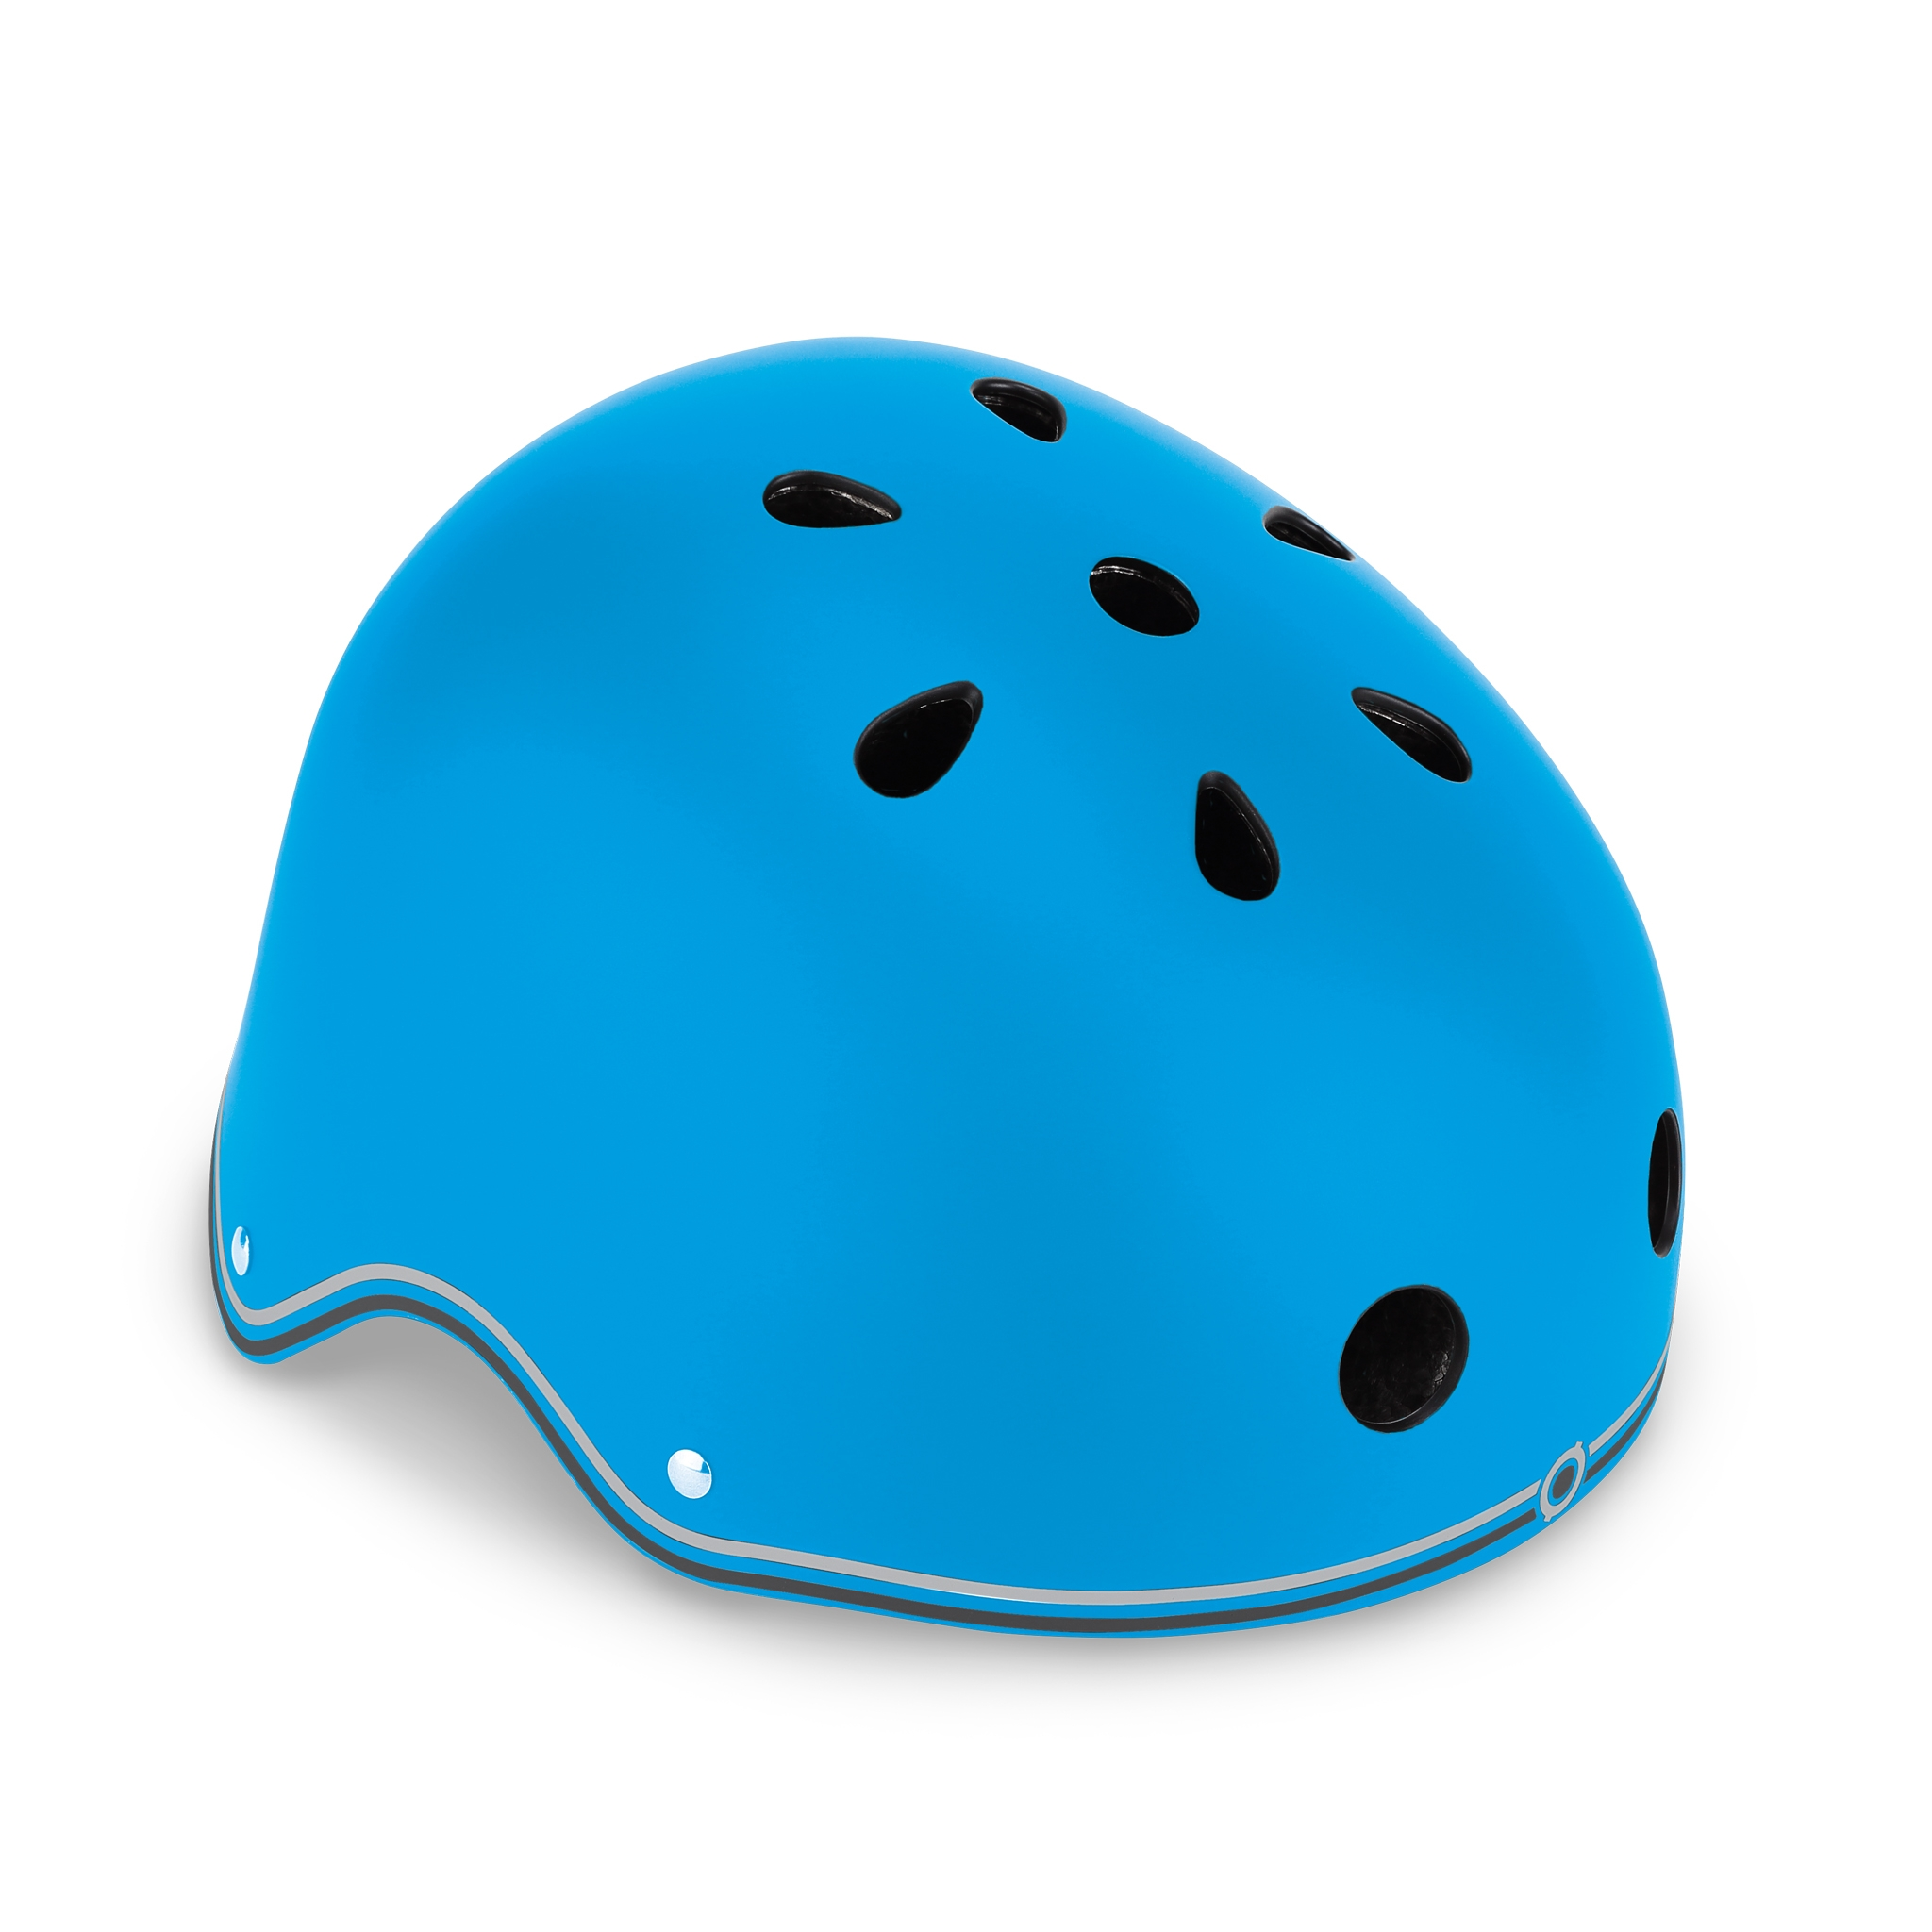 PRIMO-helmets-scooter-helmets-for-kids-in-mold-polycarbonate-outer-shell-sky-blue 0